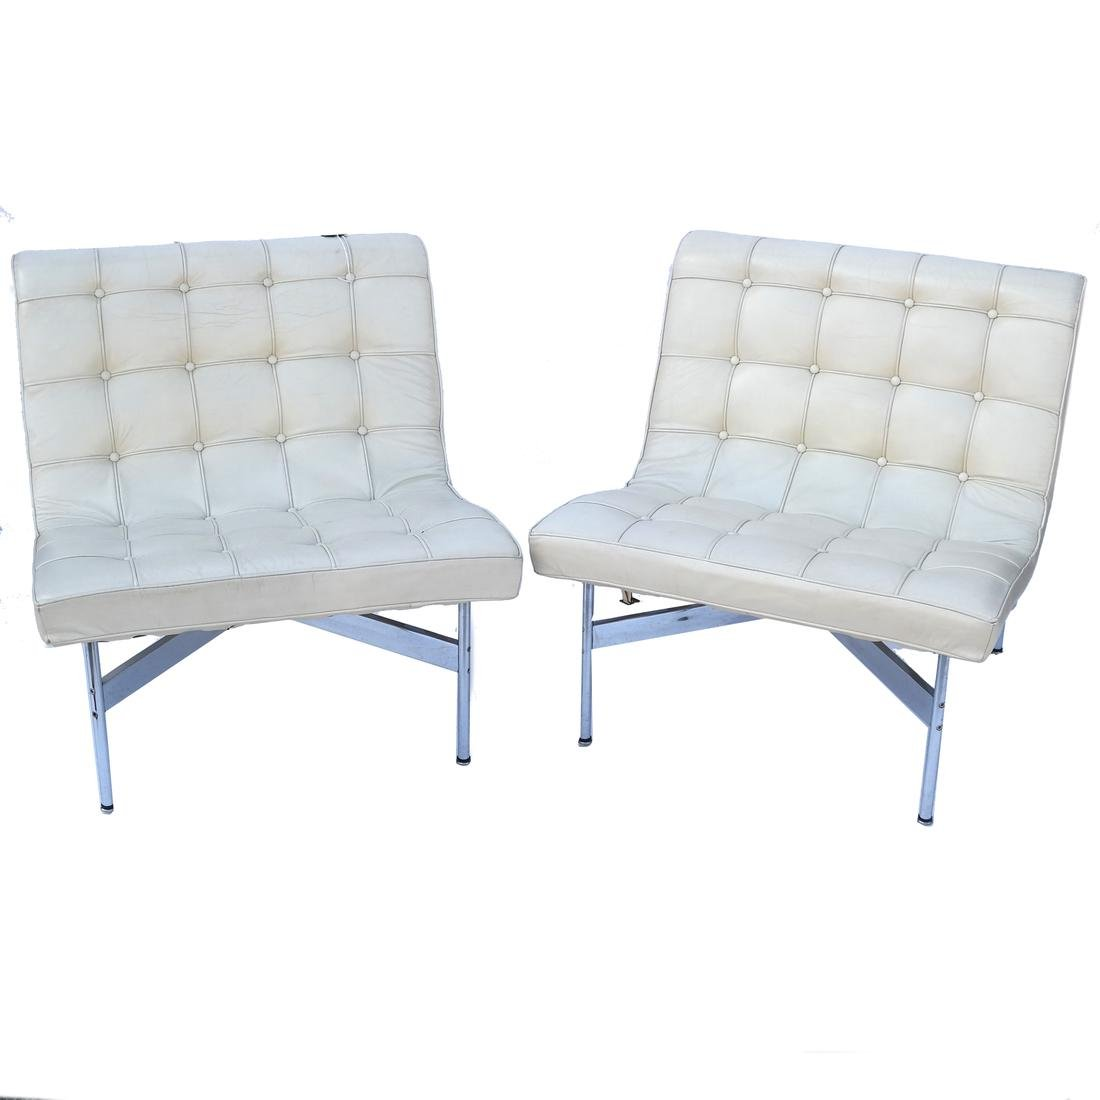 Pair of Mies van der Rohe Chairs